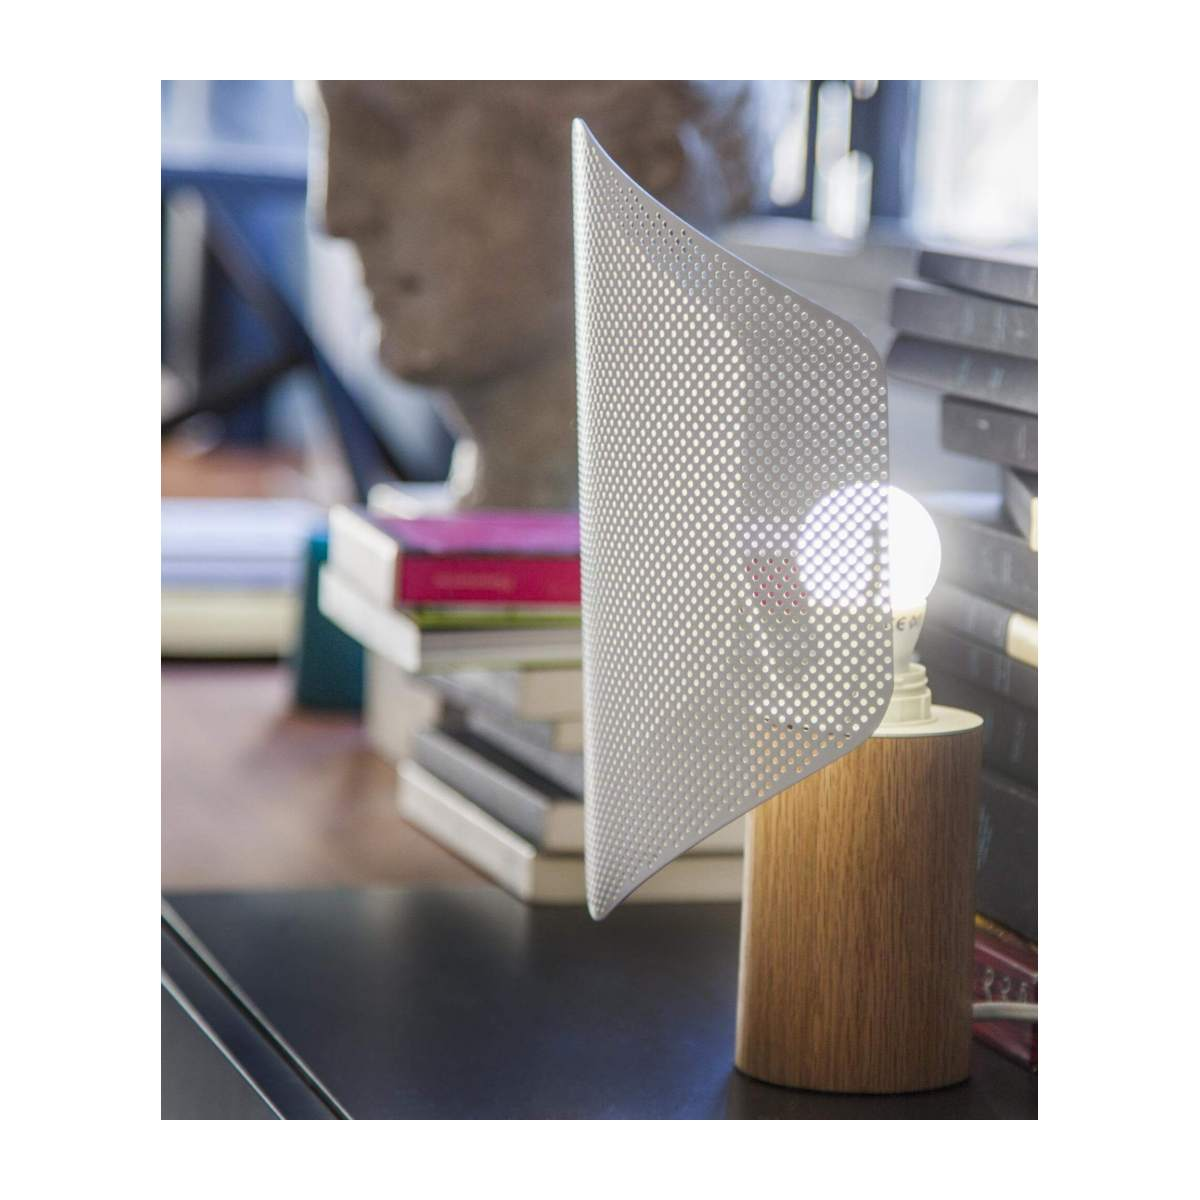 Lampe de table blanche n°11